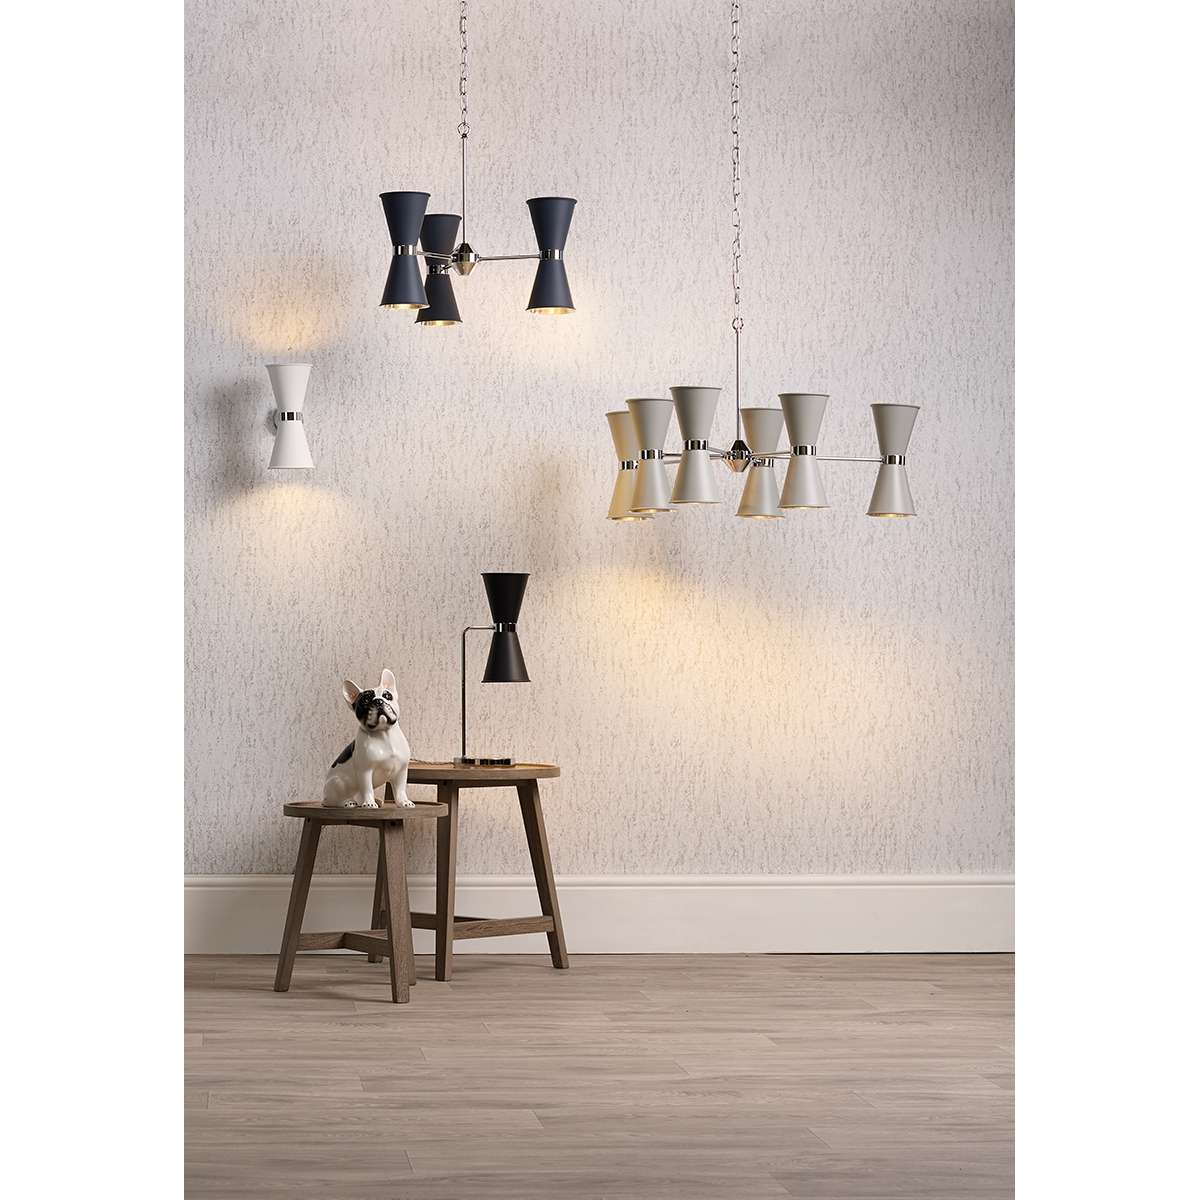 david hunt lighting hyde collection